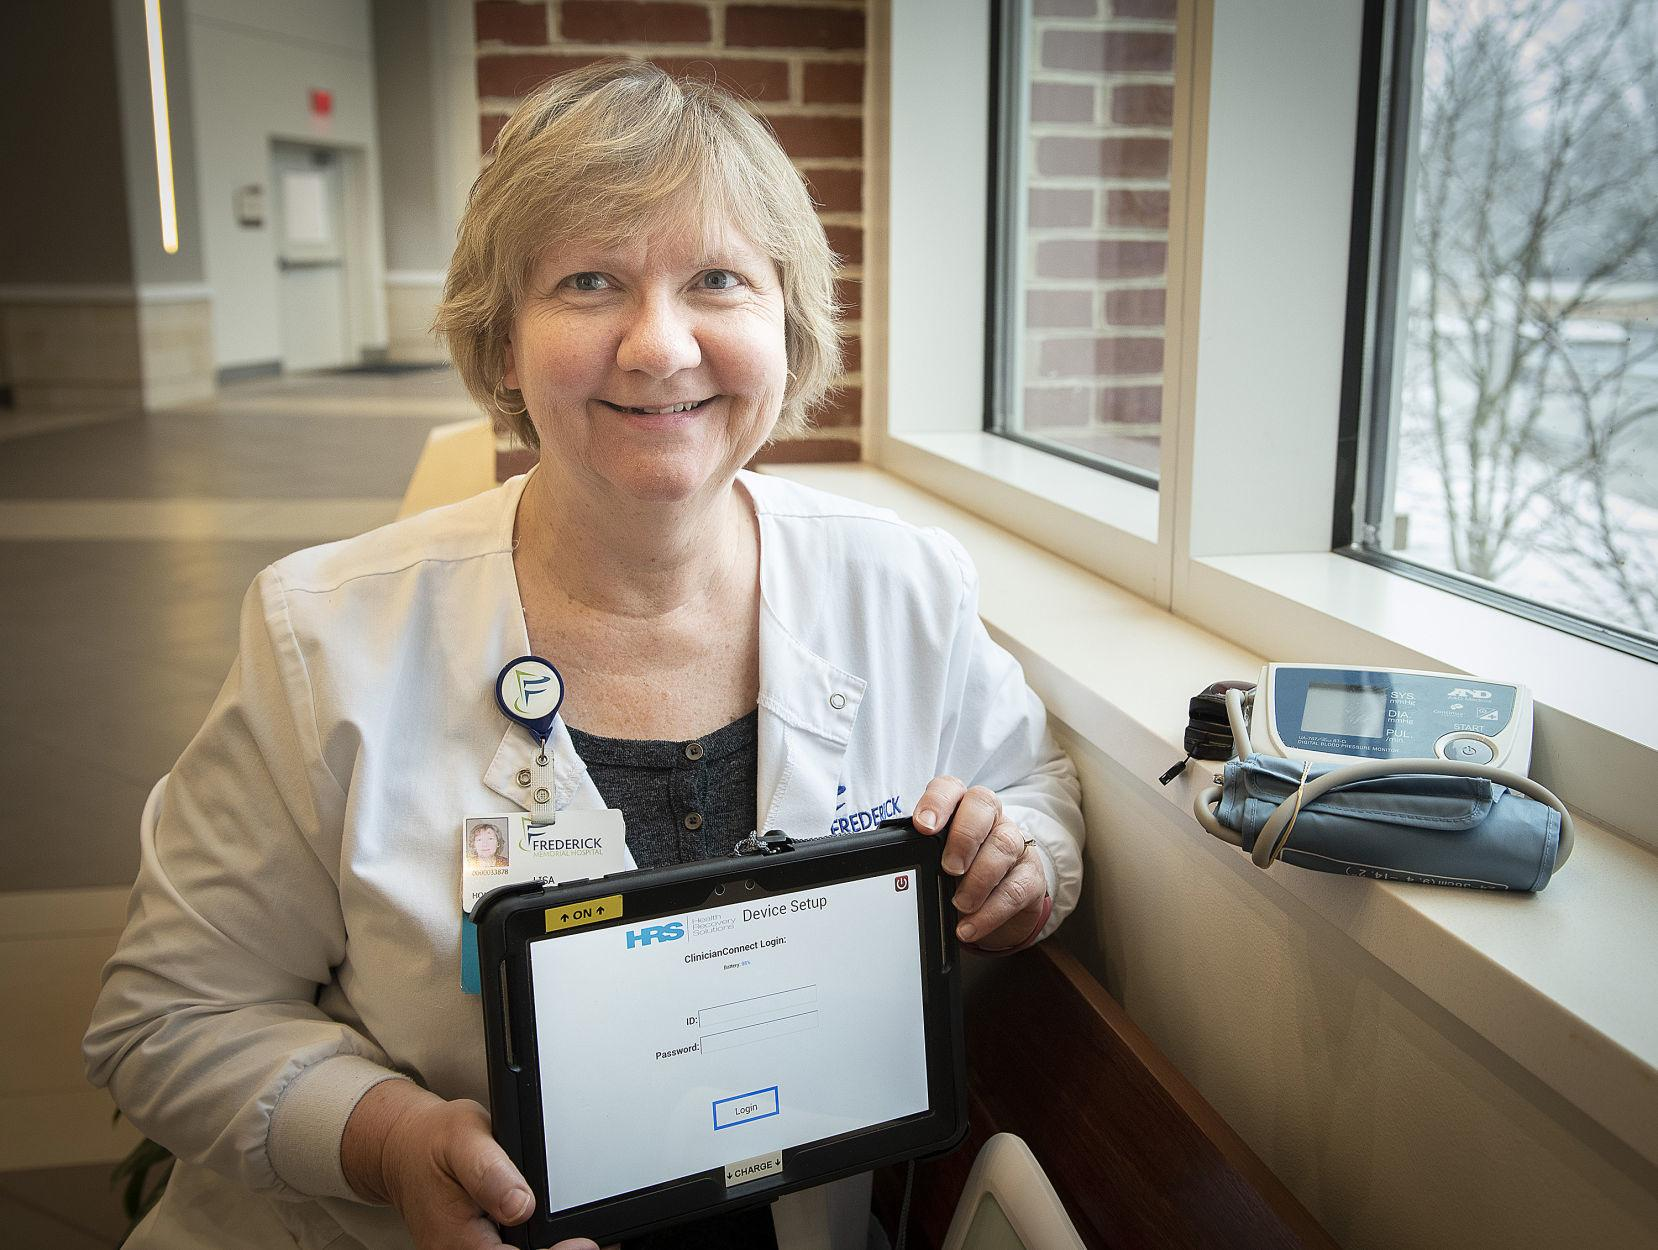 Telemedicine program helps keep patients home, hospital costs down